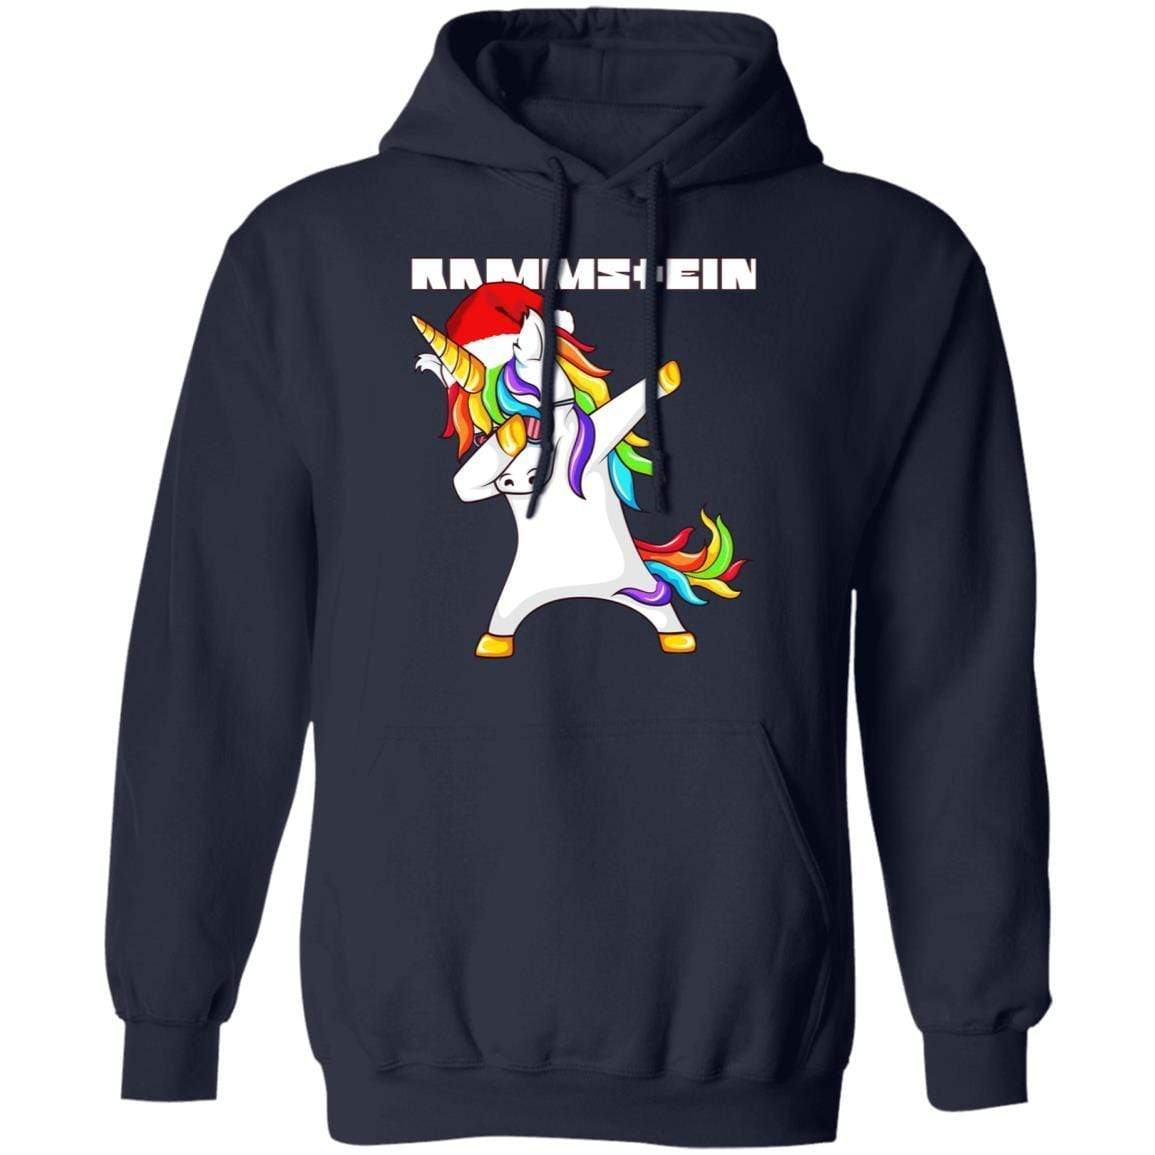 Rammstein Dabbing Unicorn Version T-Shirts, Hoodies 541-4742-88254695-23135 - Tee Ript